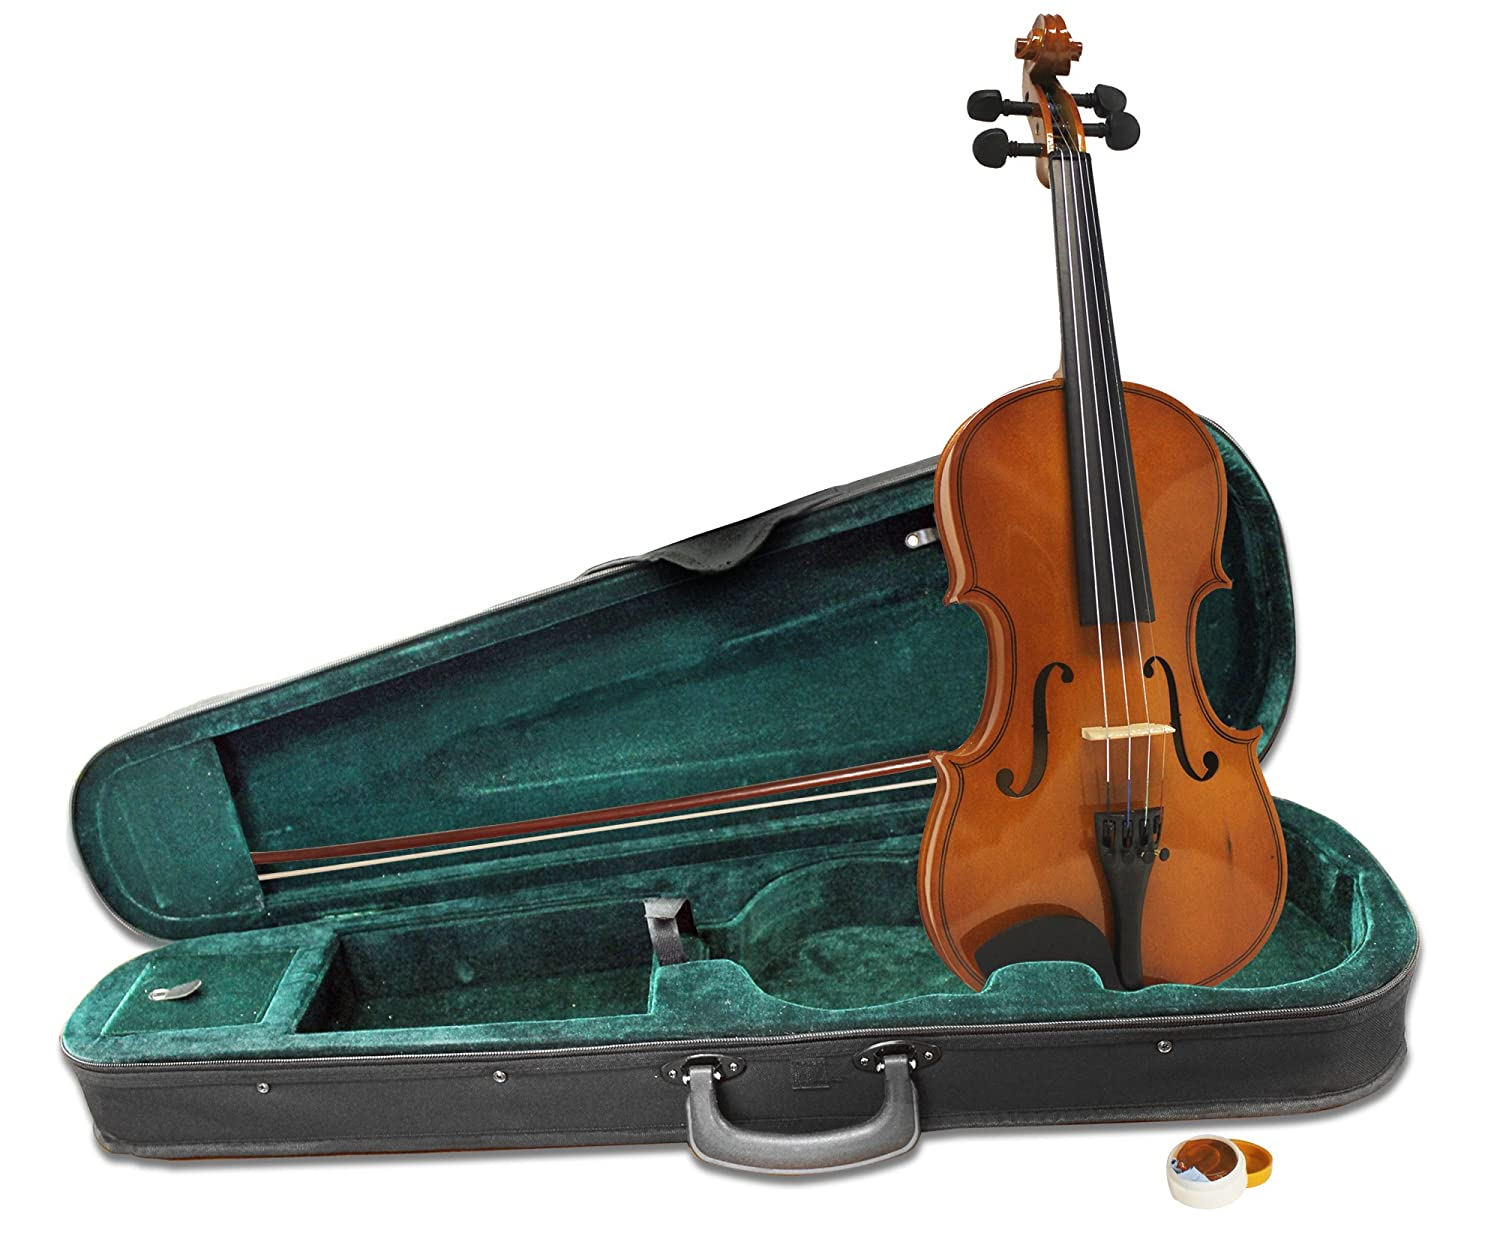 Windsor MI-1008 1/2 Size Violin Outfit Including Case Designed for Kids